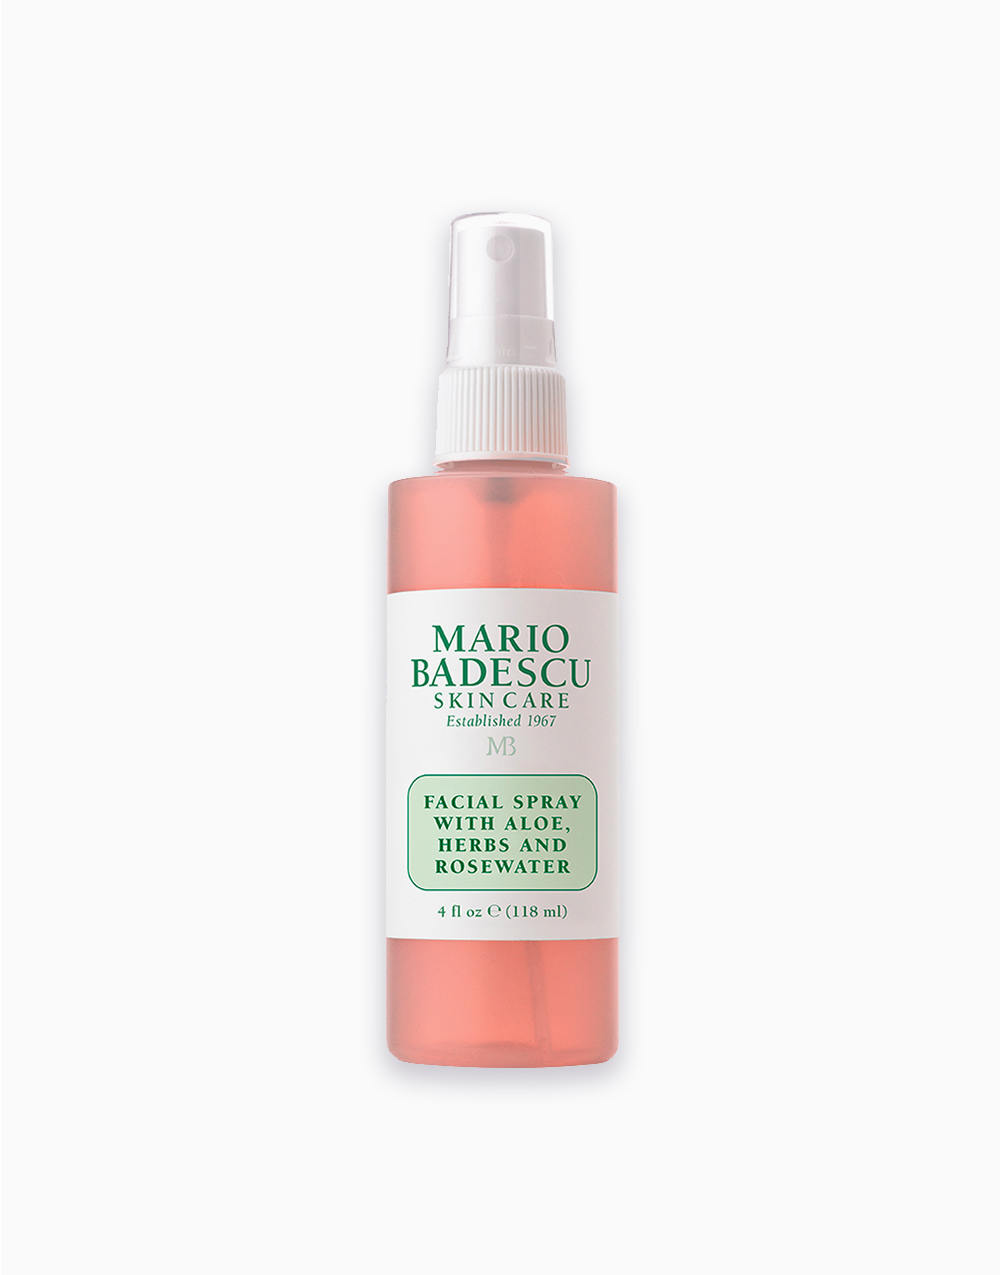 Facial Spray With Aloe, Herbs, and Rosewater (4oz) by Mario Badescu